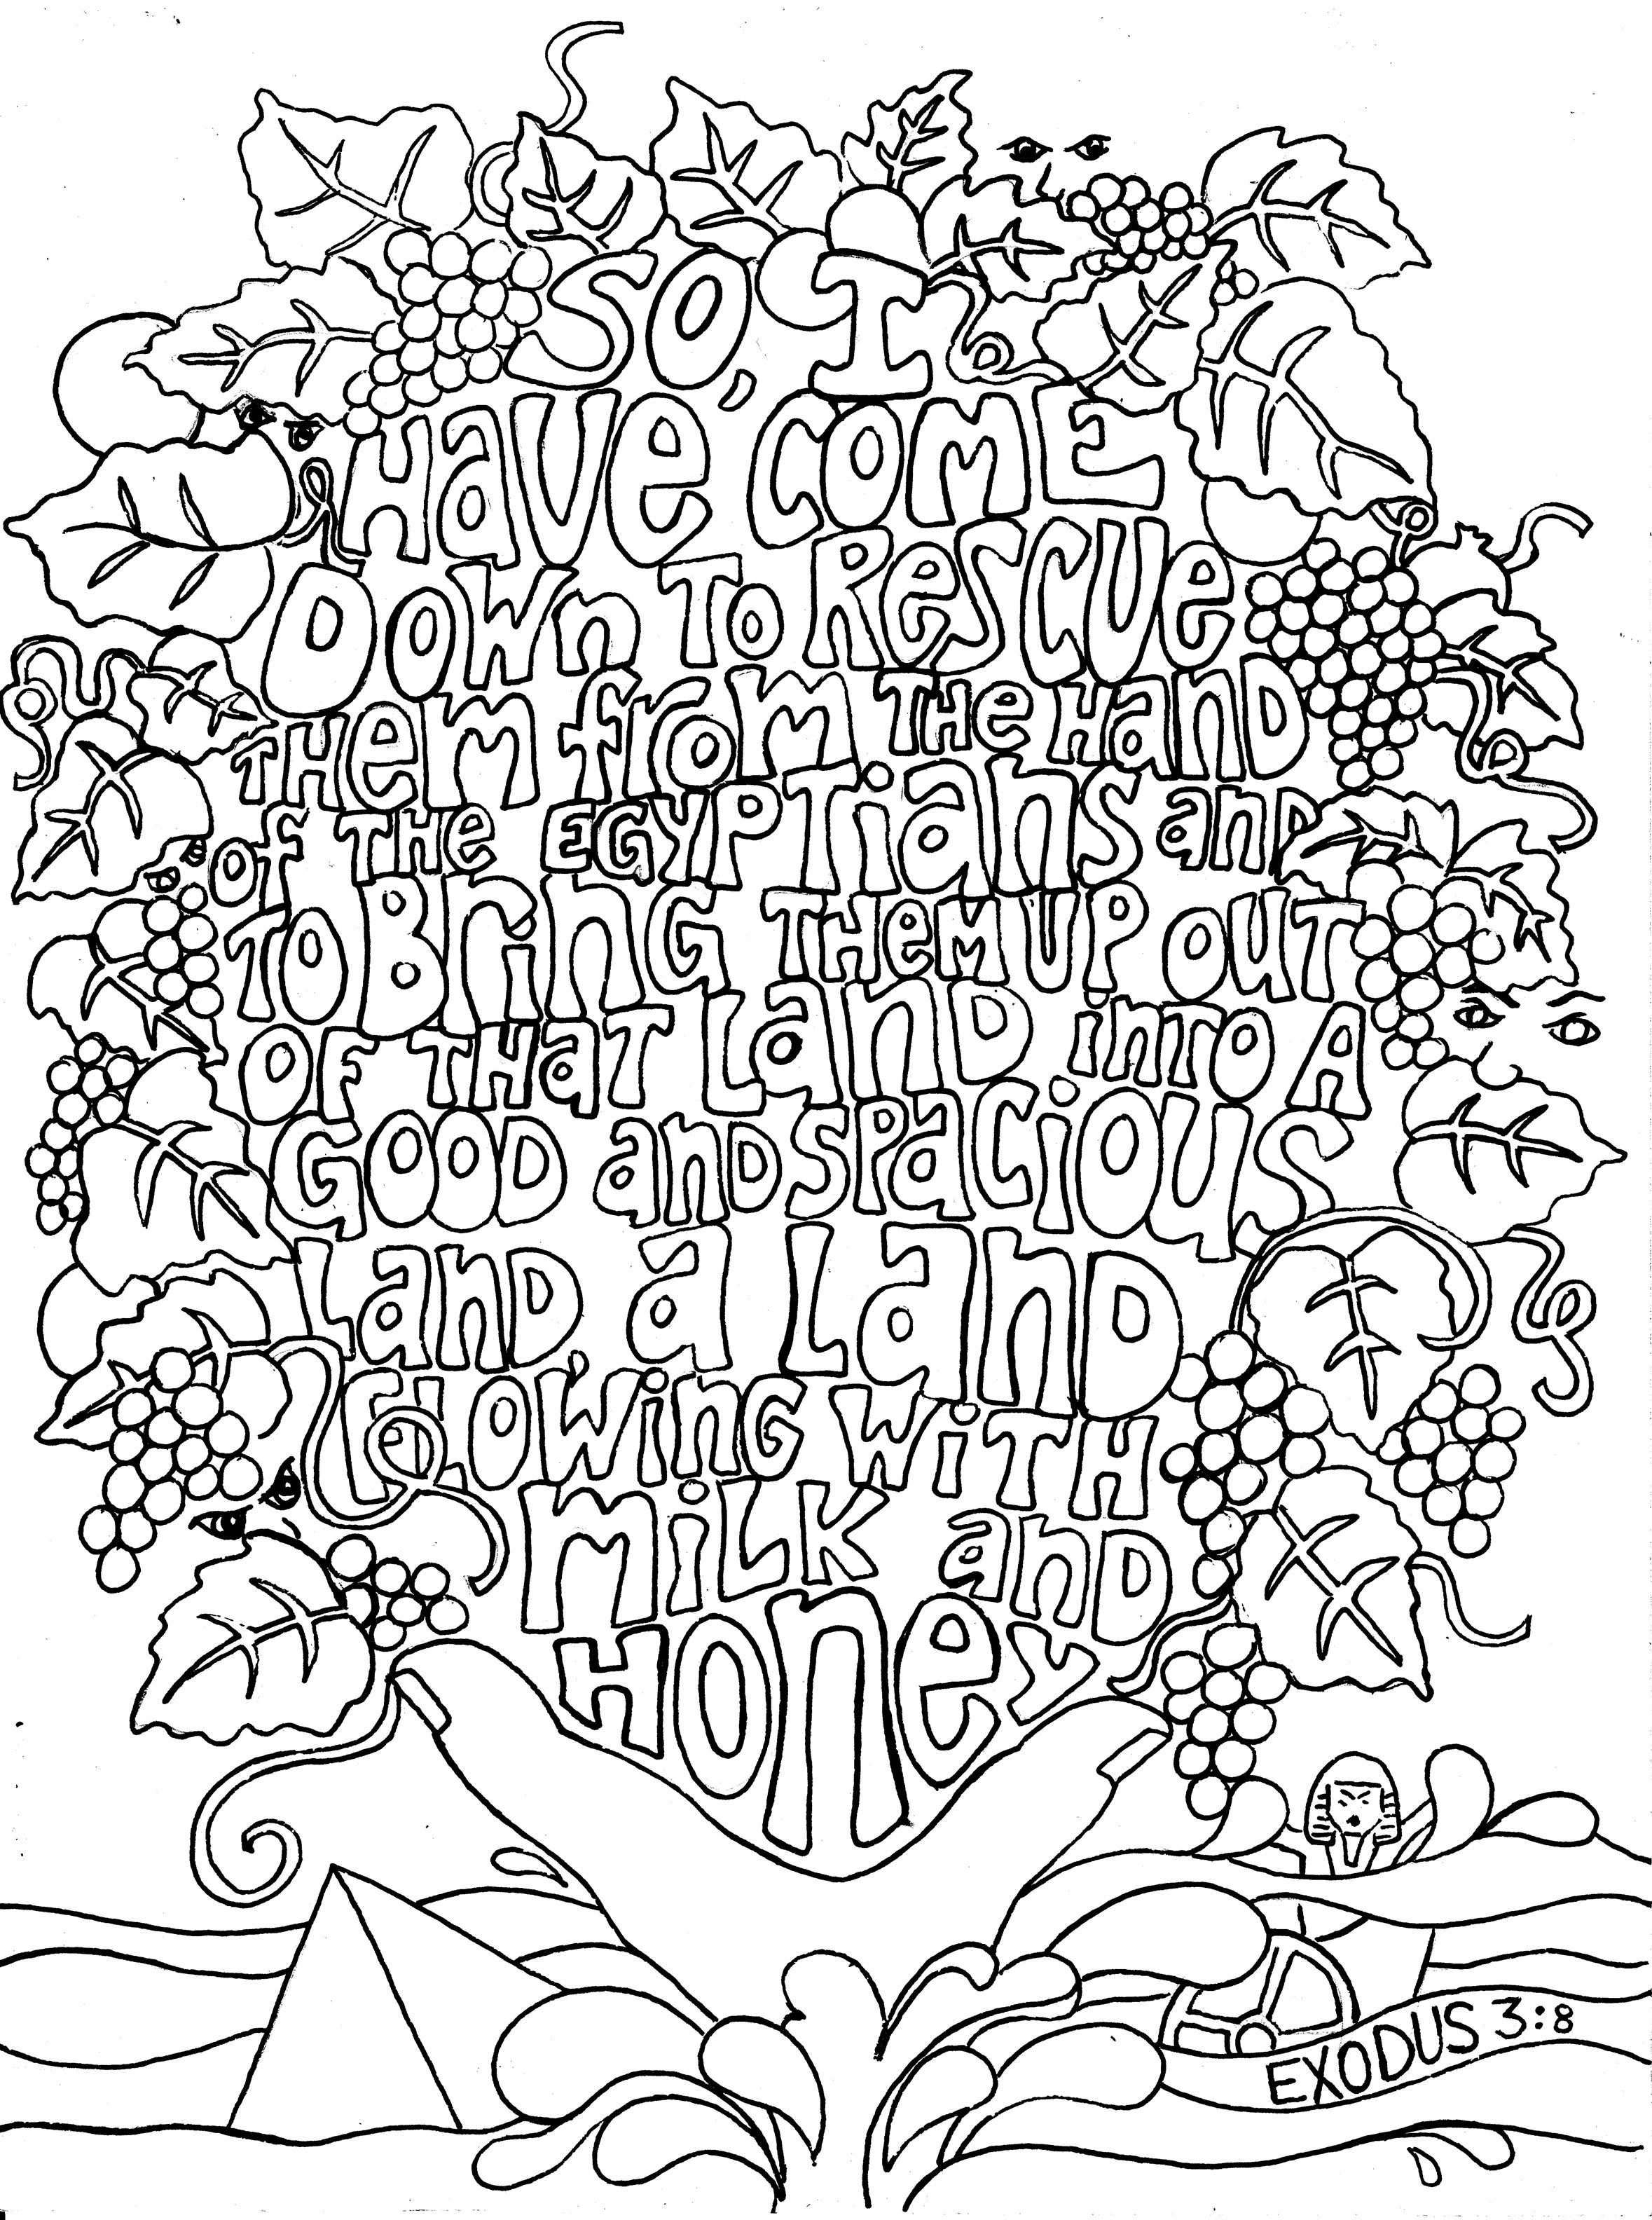 exodus 38 adult colouring in sheets of bible verses link is courtesy of a google